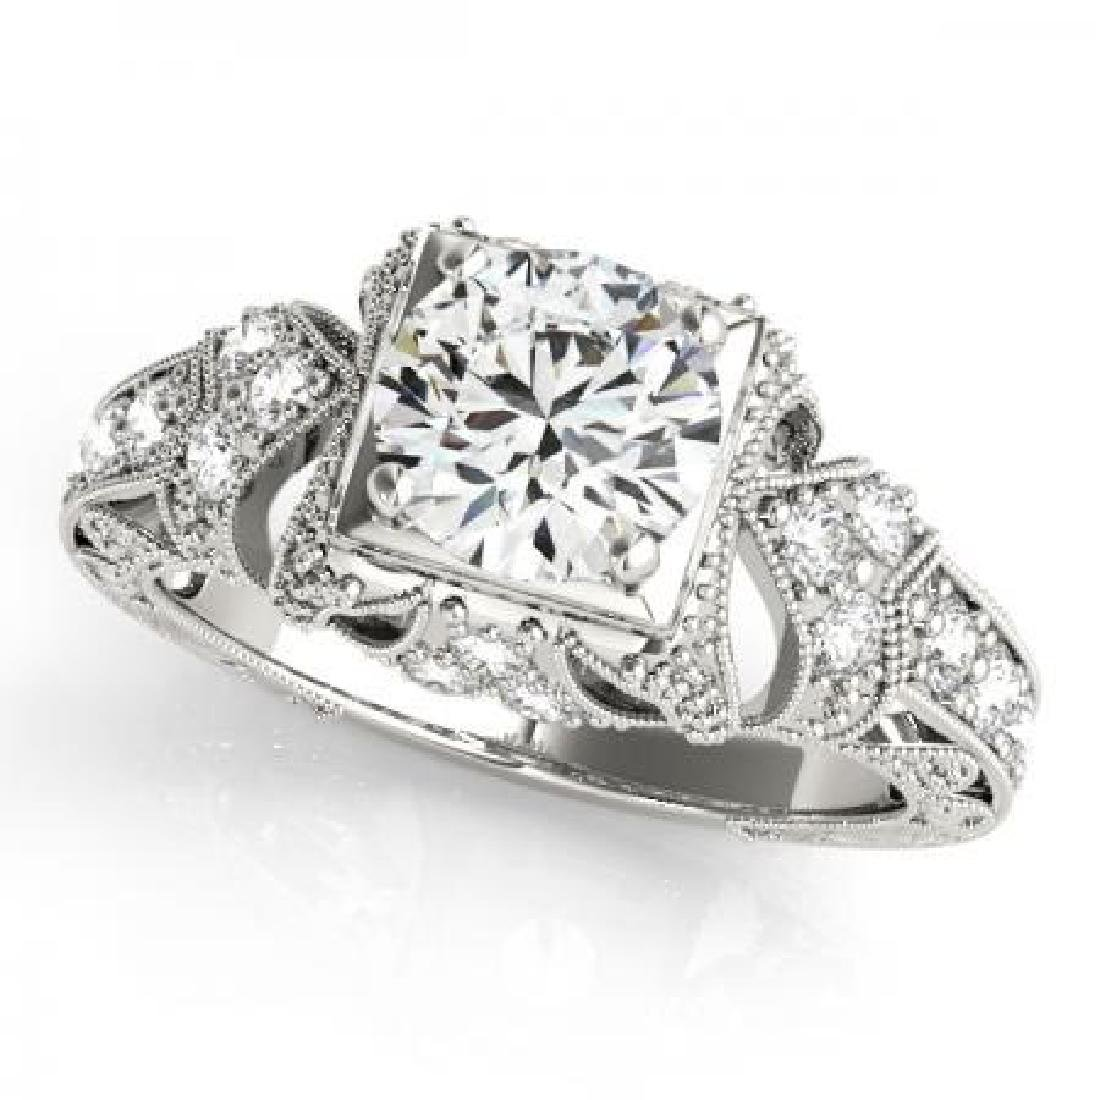 18KT WHITE GOLD .90 CT G-H/VS-SI1 VINTAGE STYLE DIAMOND